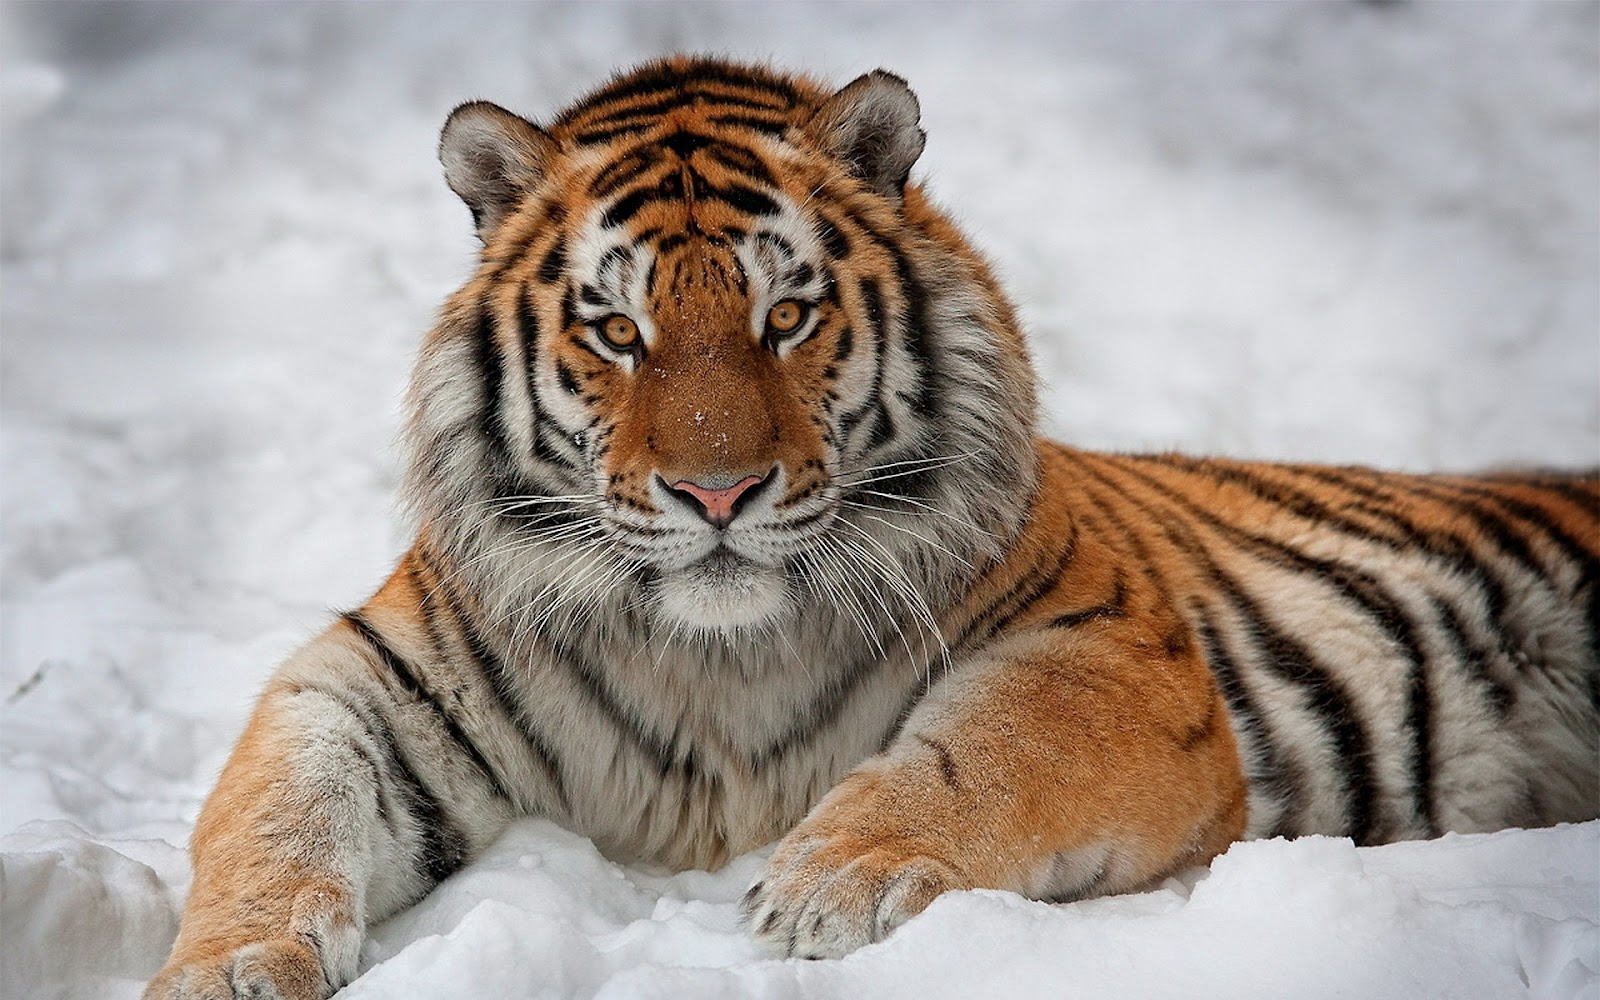 Tiger+in+the+Snow.jpg